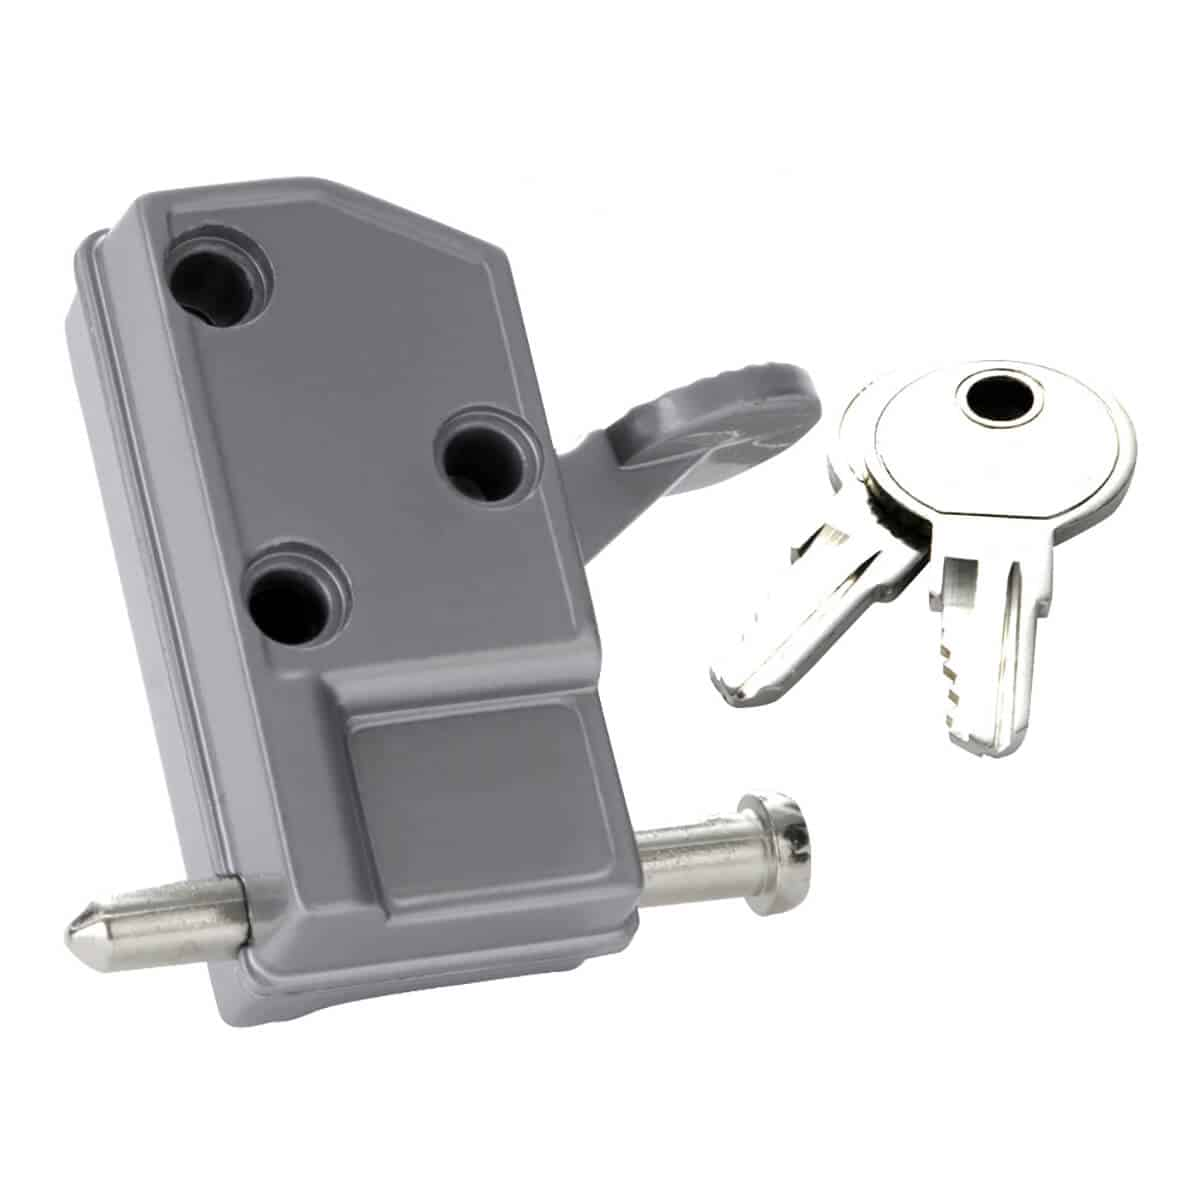 patio door locks with keys that can replace a traditional padlock